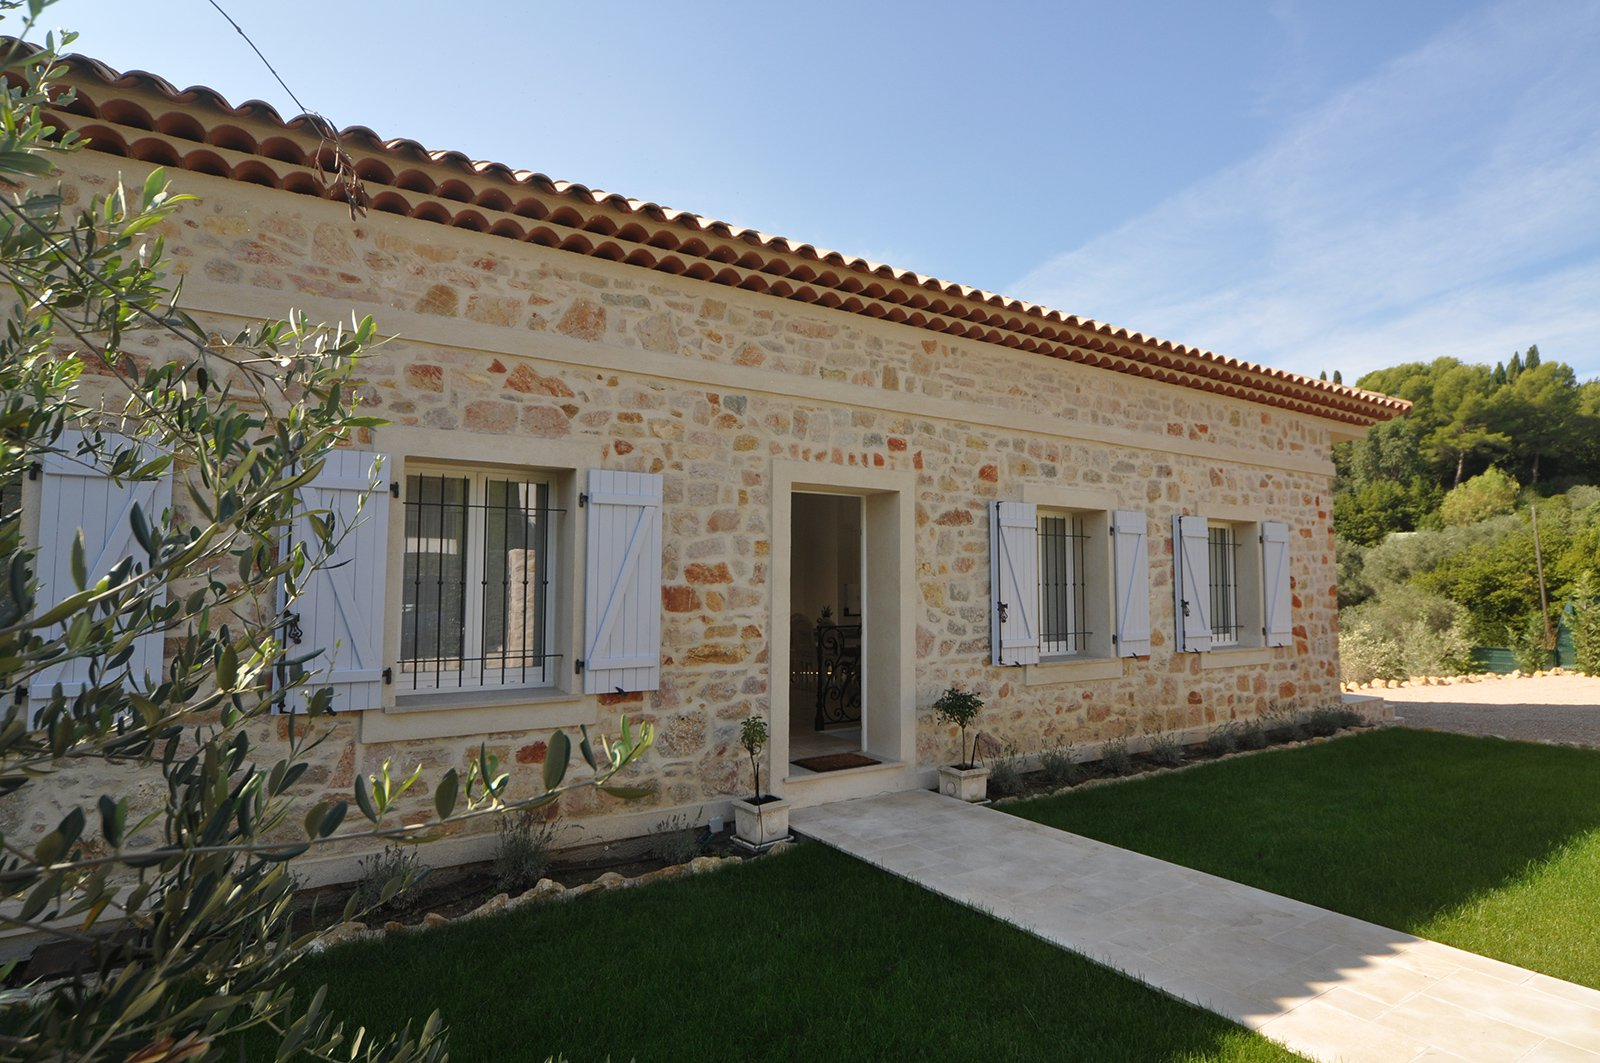 BRAND NEW STONE BASTID CLOSE TO SHOPPING AREA